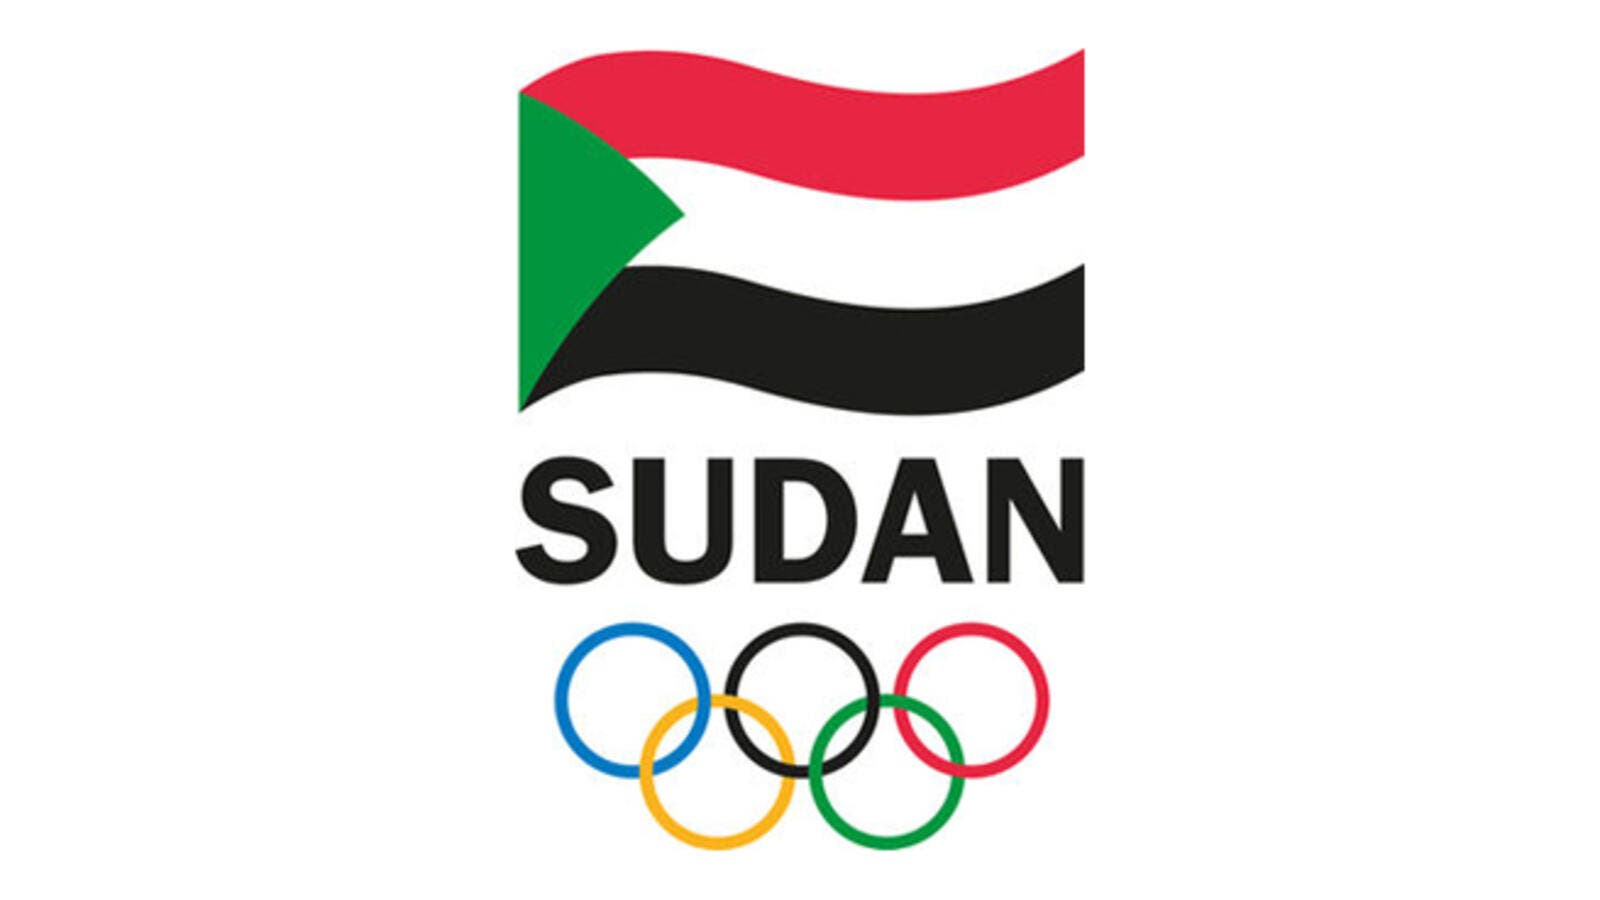 The Sudanese Olympic Committee